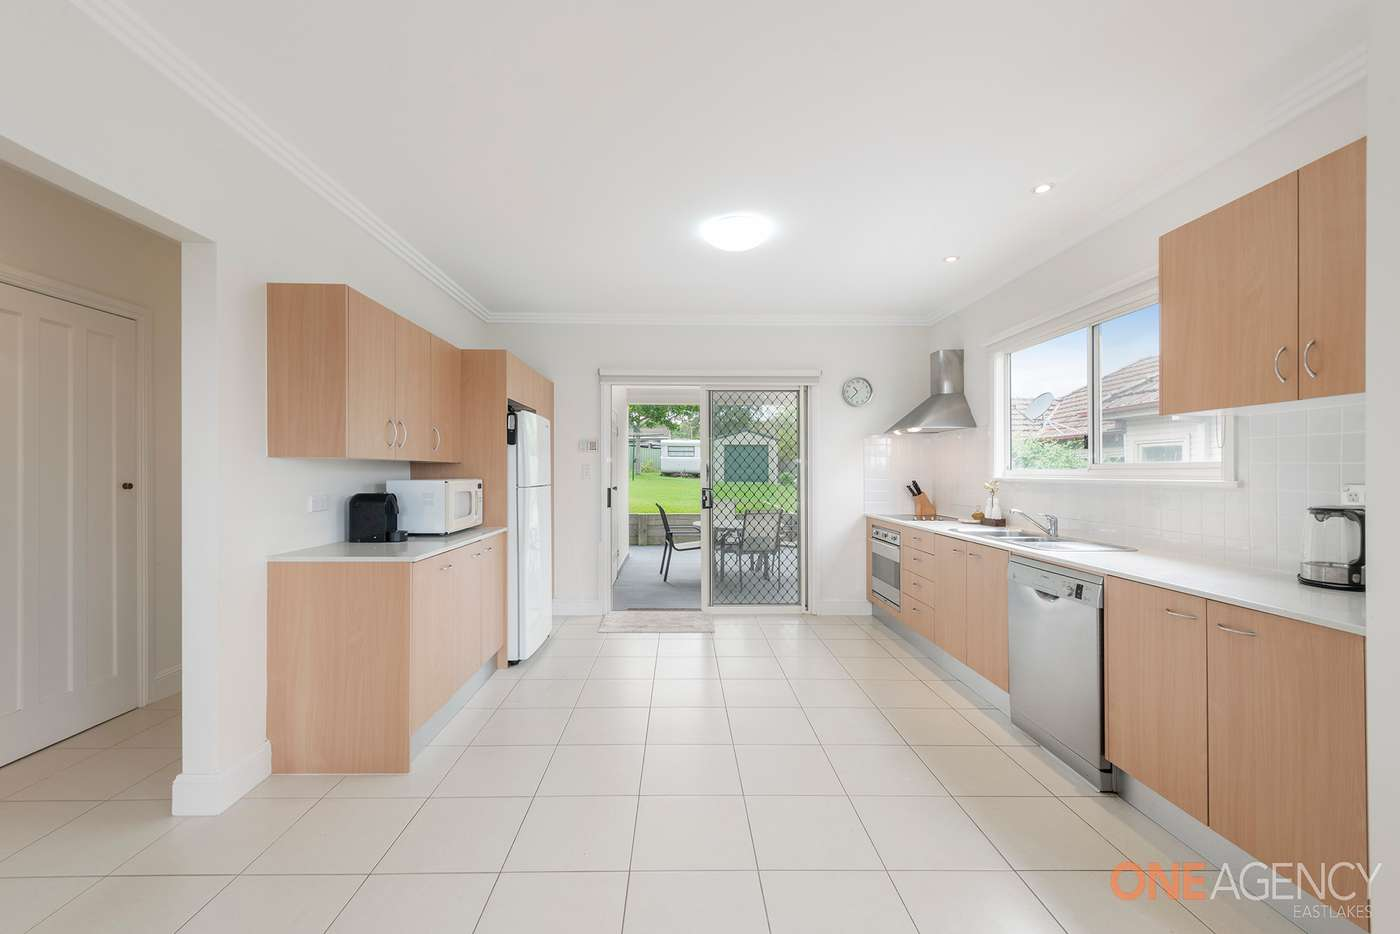 Fifth view of Homely house listing, 23 Marine Parade, Nords Wharf NSW 2281